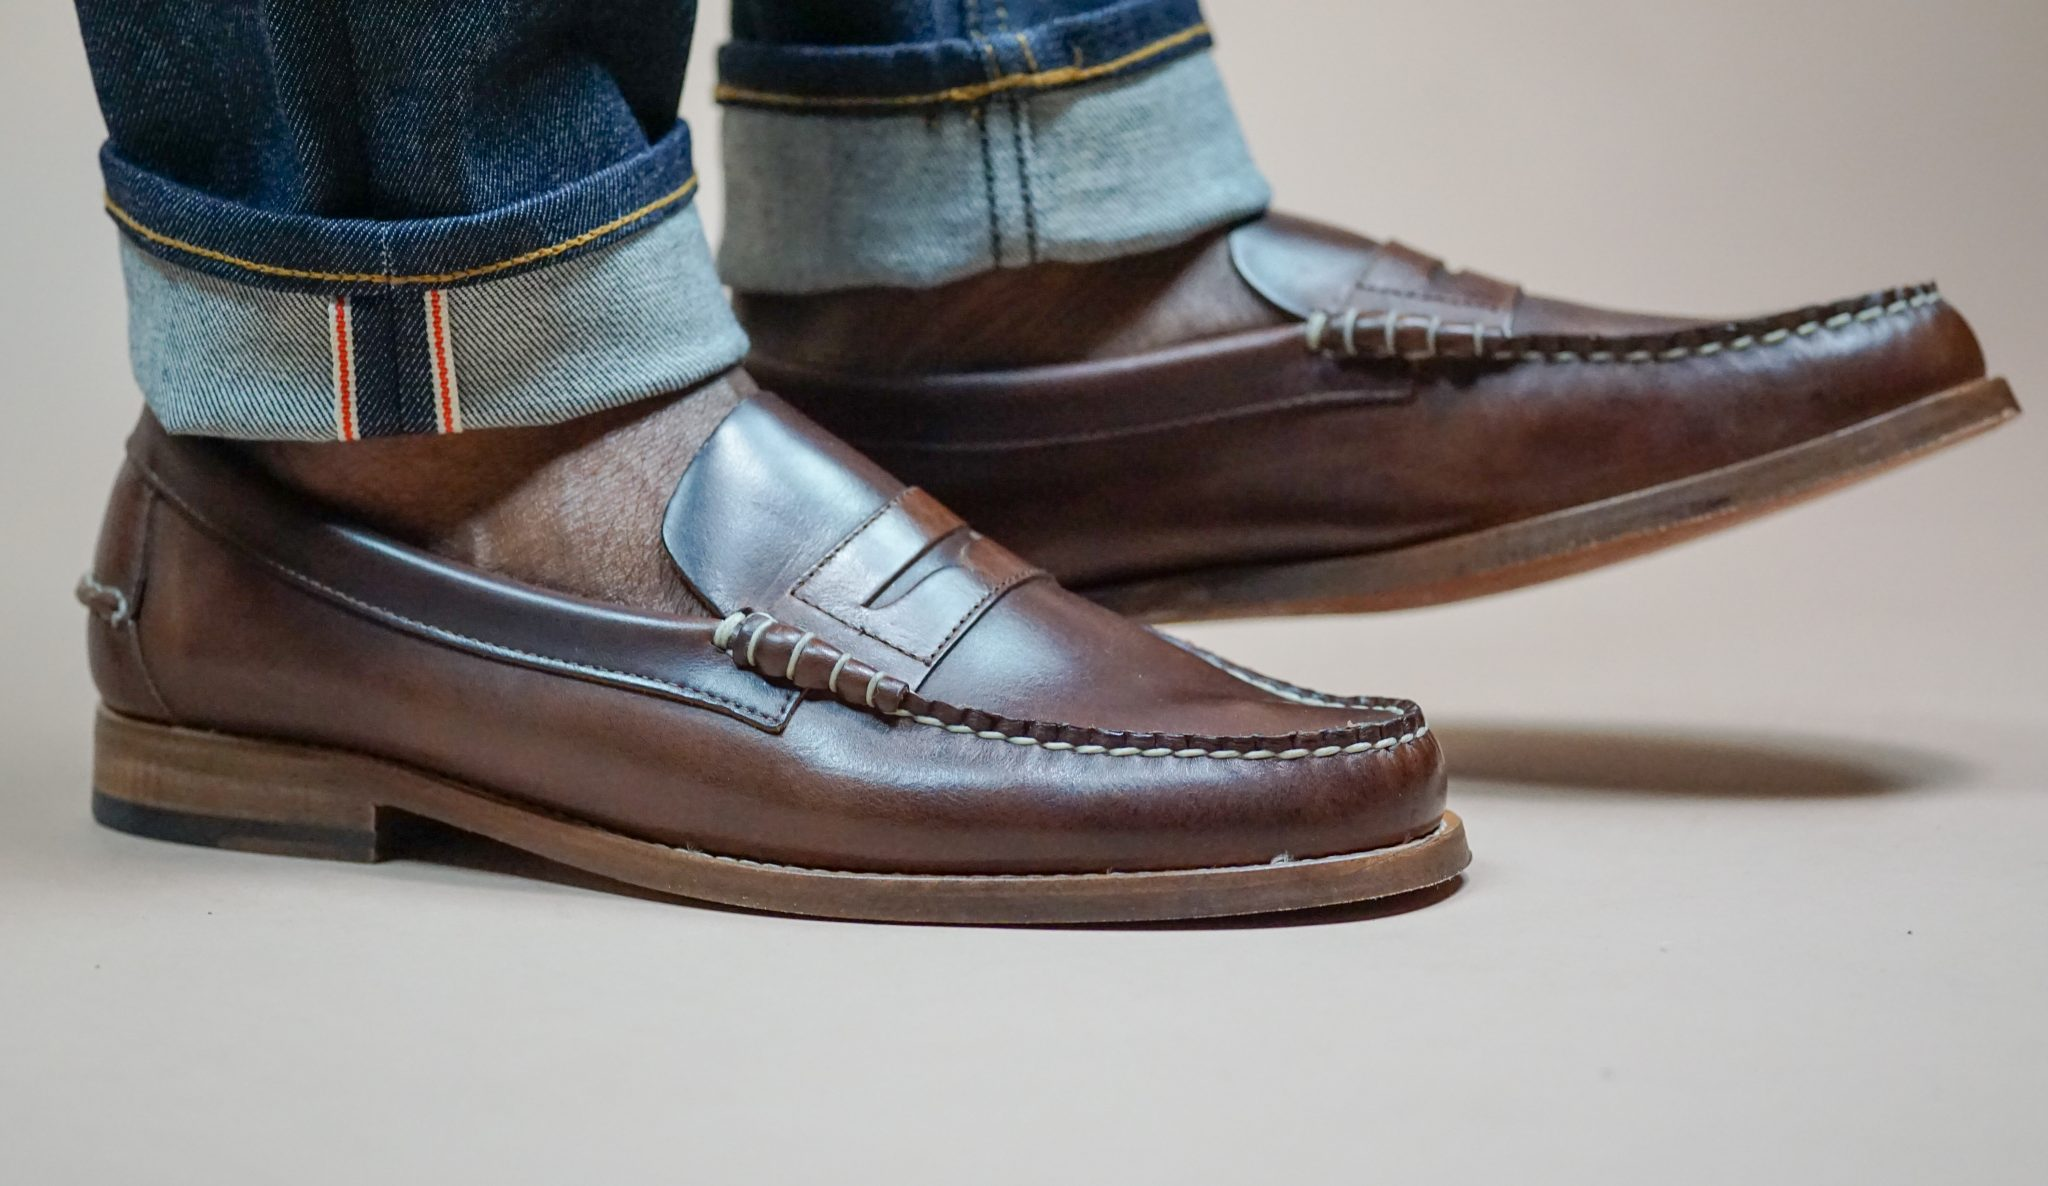 dapper-advisor-sebago-legacy-brown-penny-loafers-raw-selvedge-denim-cuffed-jeans-